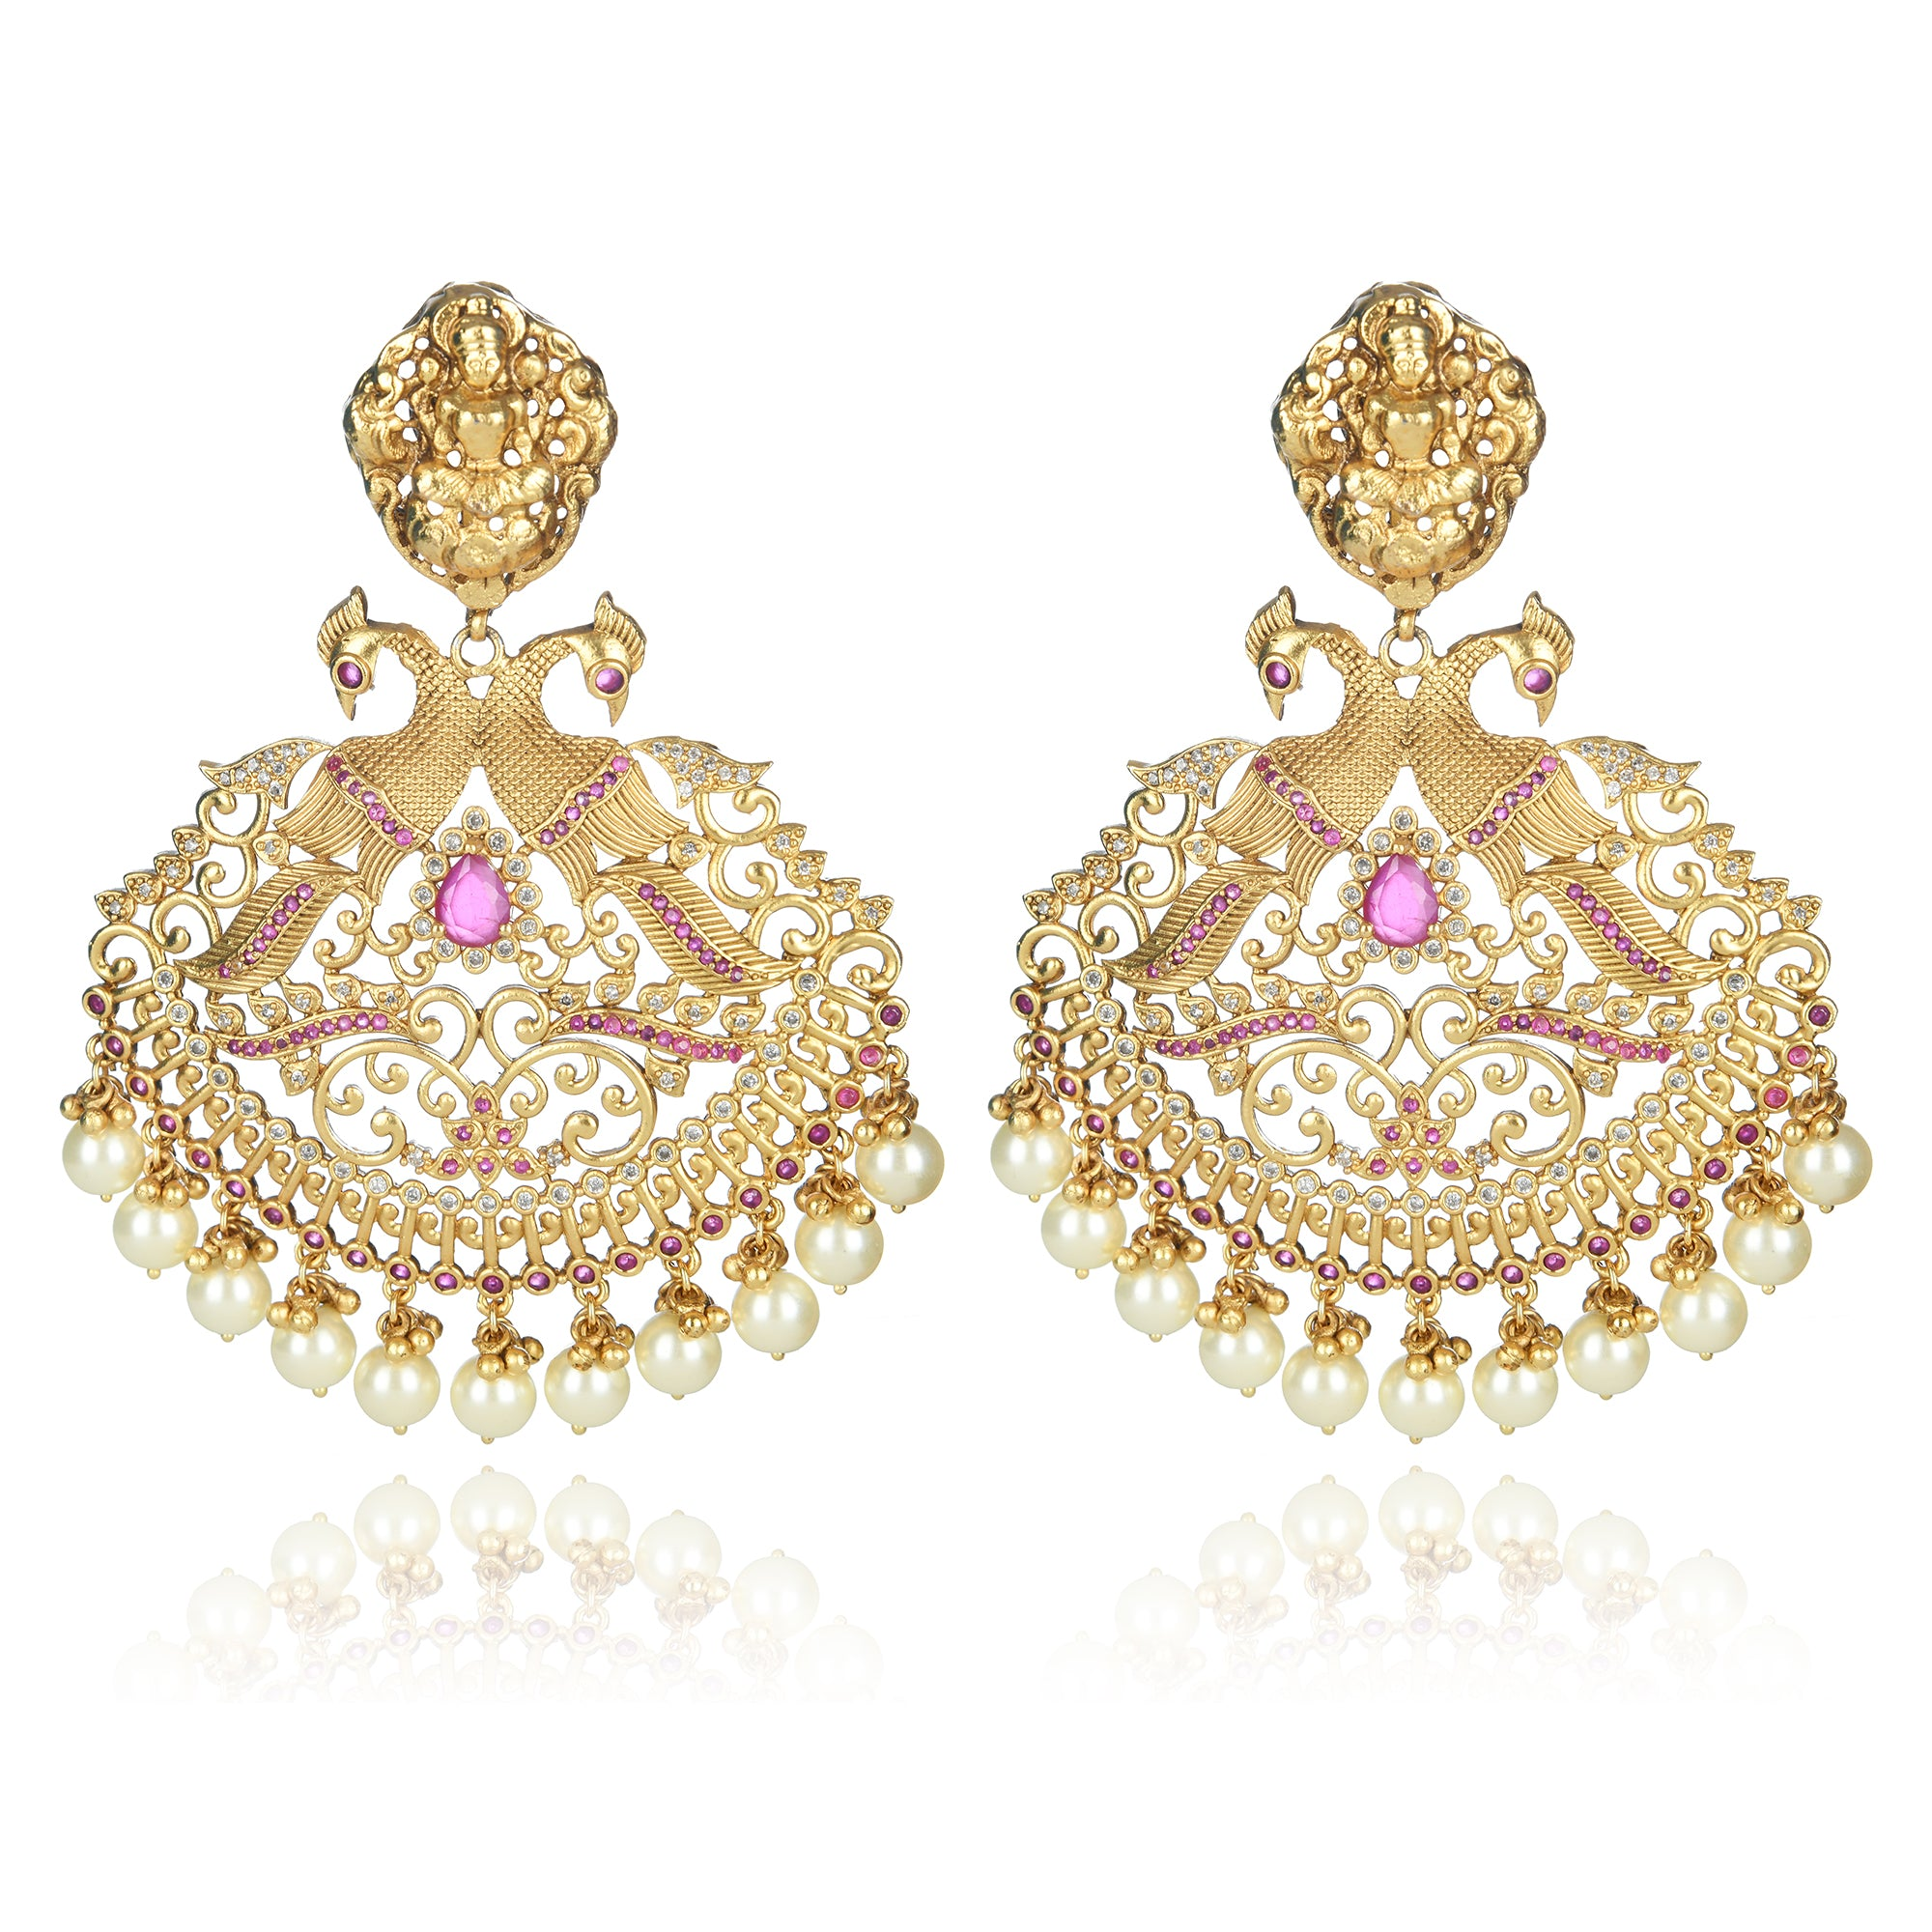 GOLD PLATED PEACOCK STYLED TEMPLE EARRING